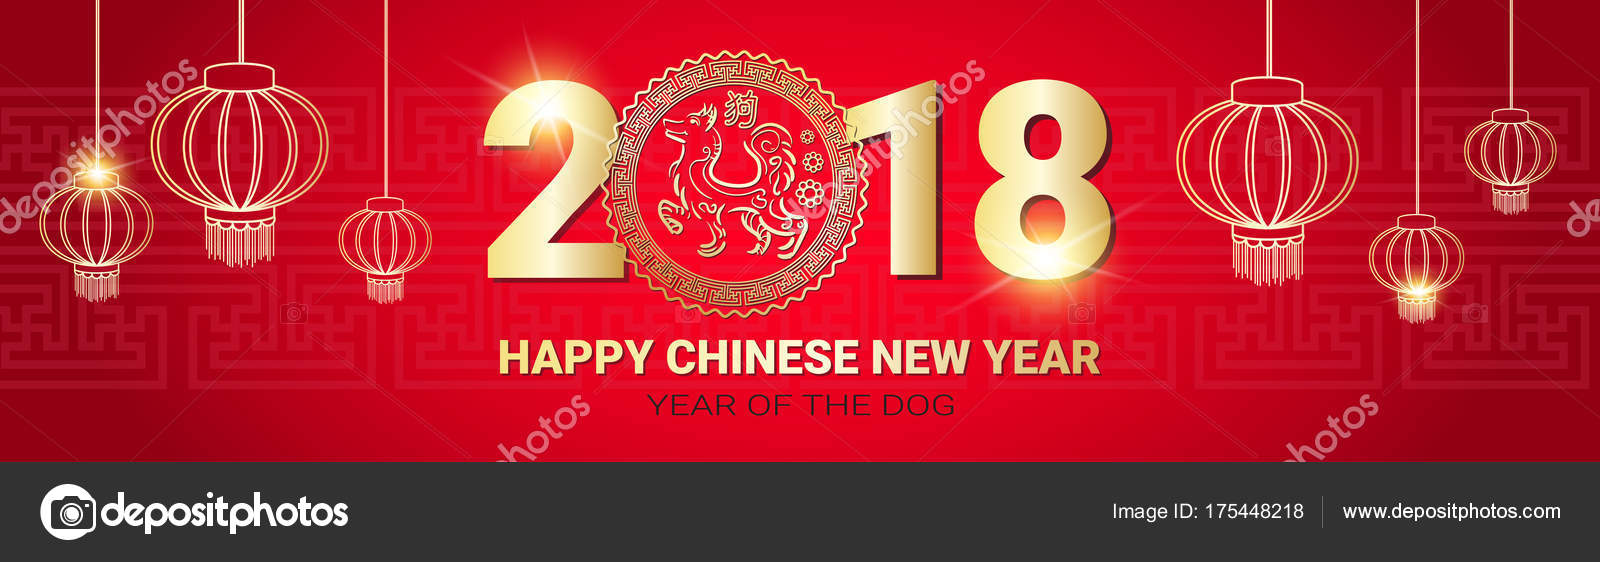 chinese new year greeting card with traditional lanterns golden decoration on red background horizontal banner flat vector illustration vector by mast3r